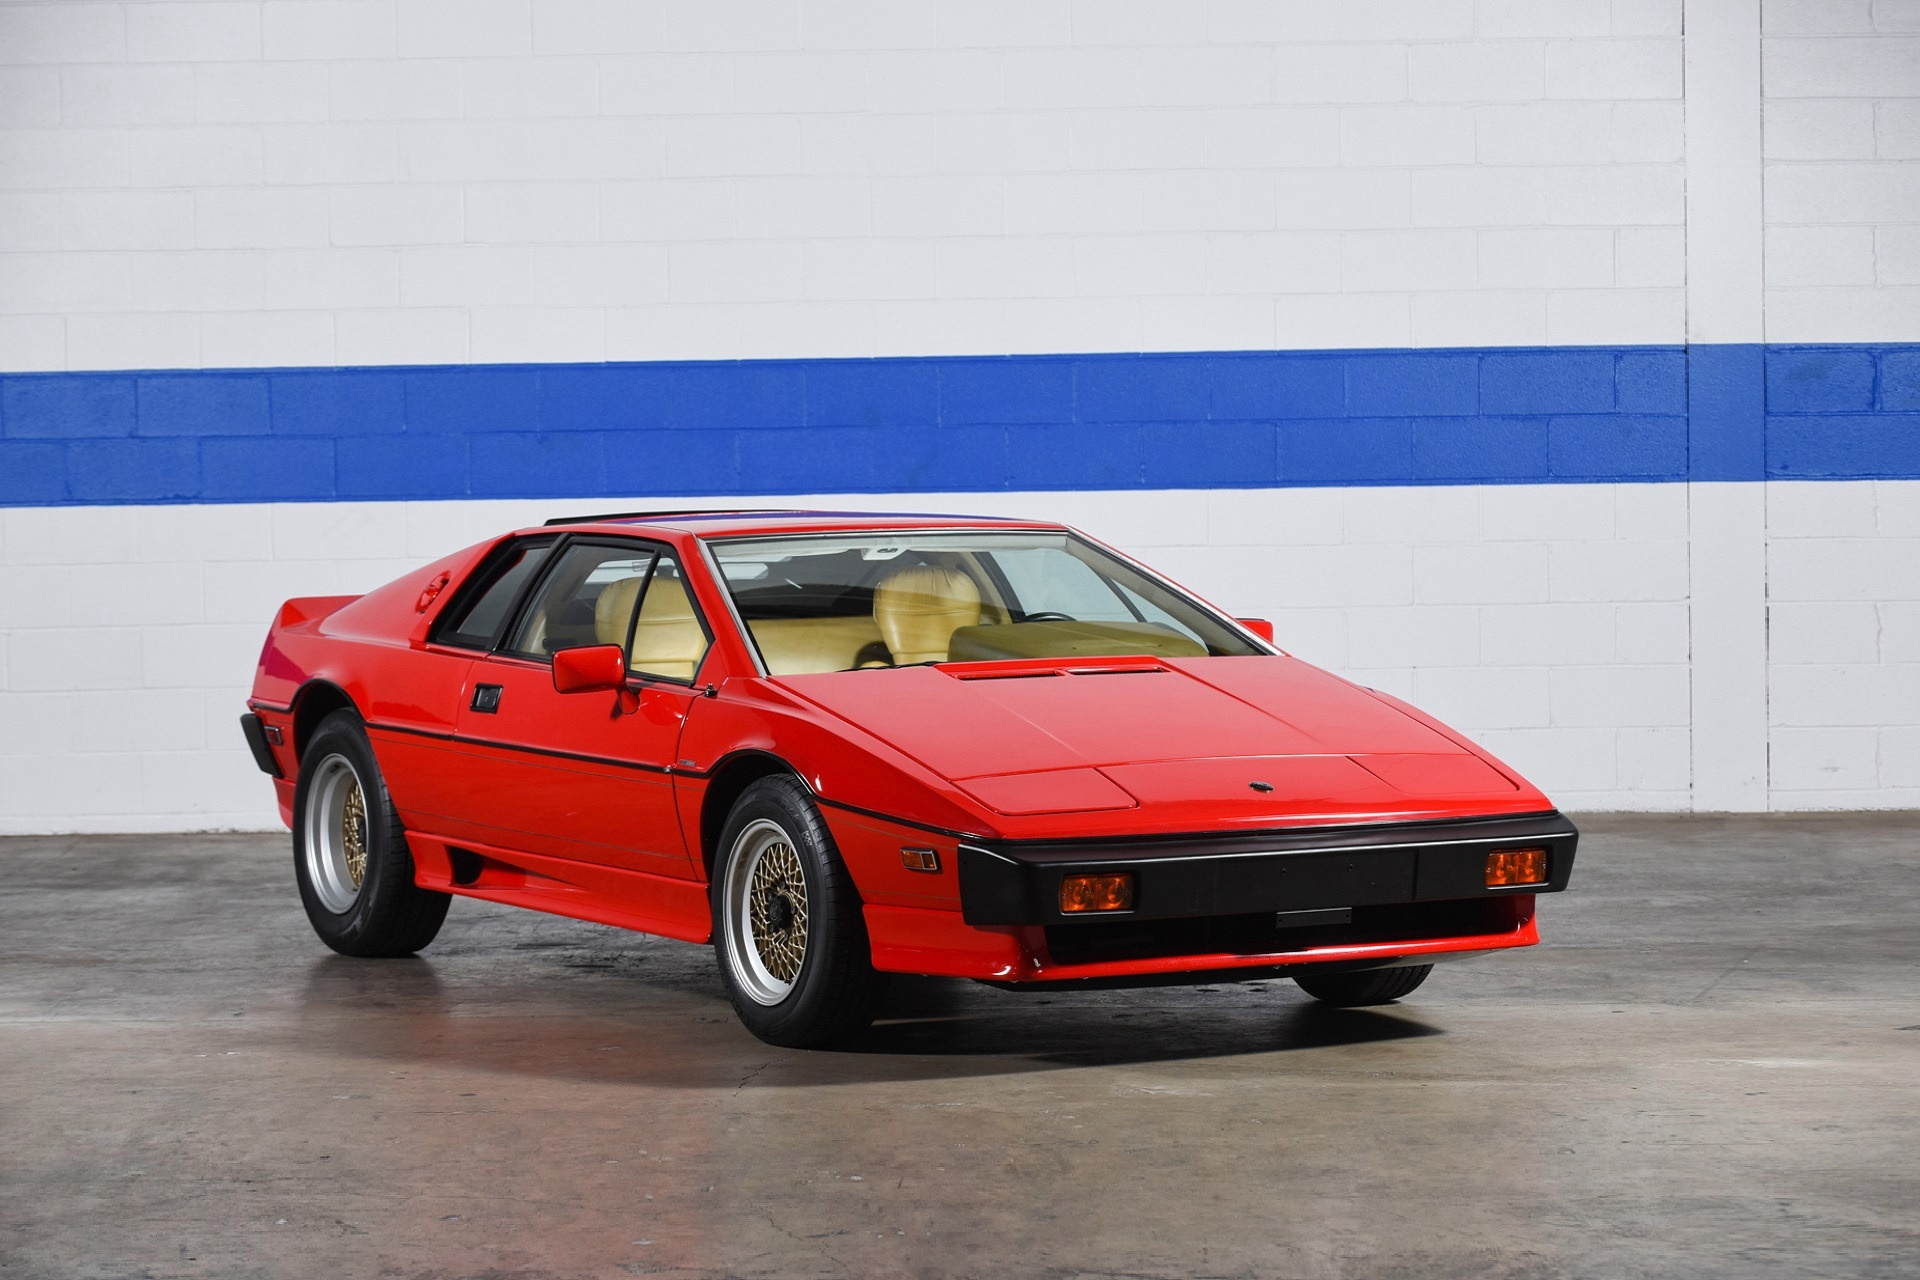 1987 lotus esprit turbo motorcar classics exotic and classic car dealership farmingdale ny. Black Bedroom Furniture Sets. Home Design Ideas